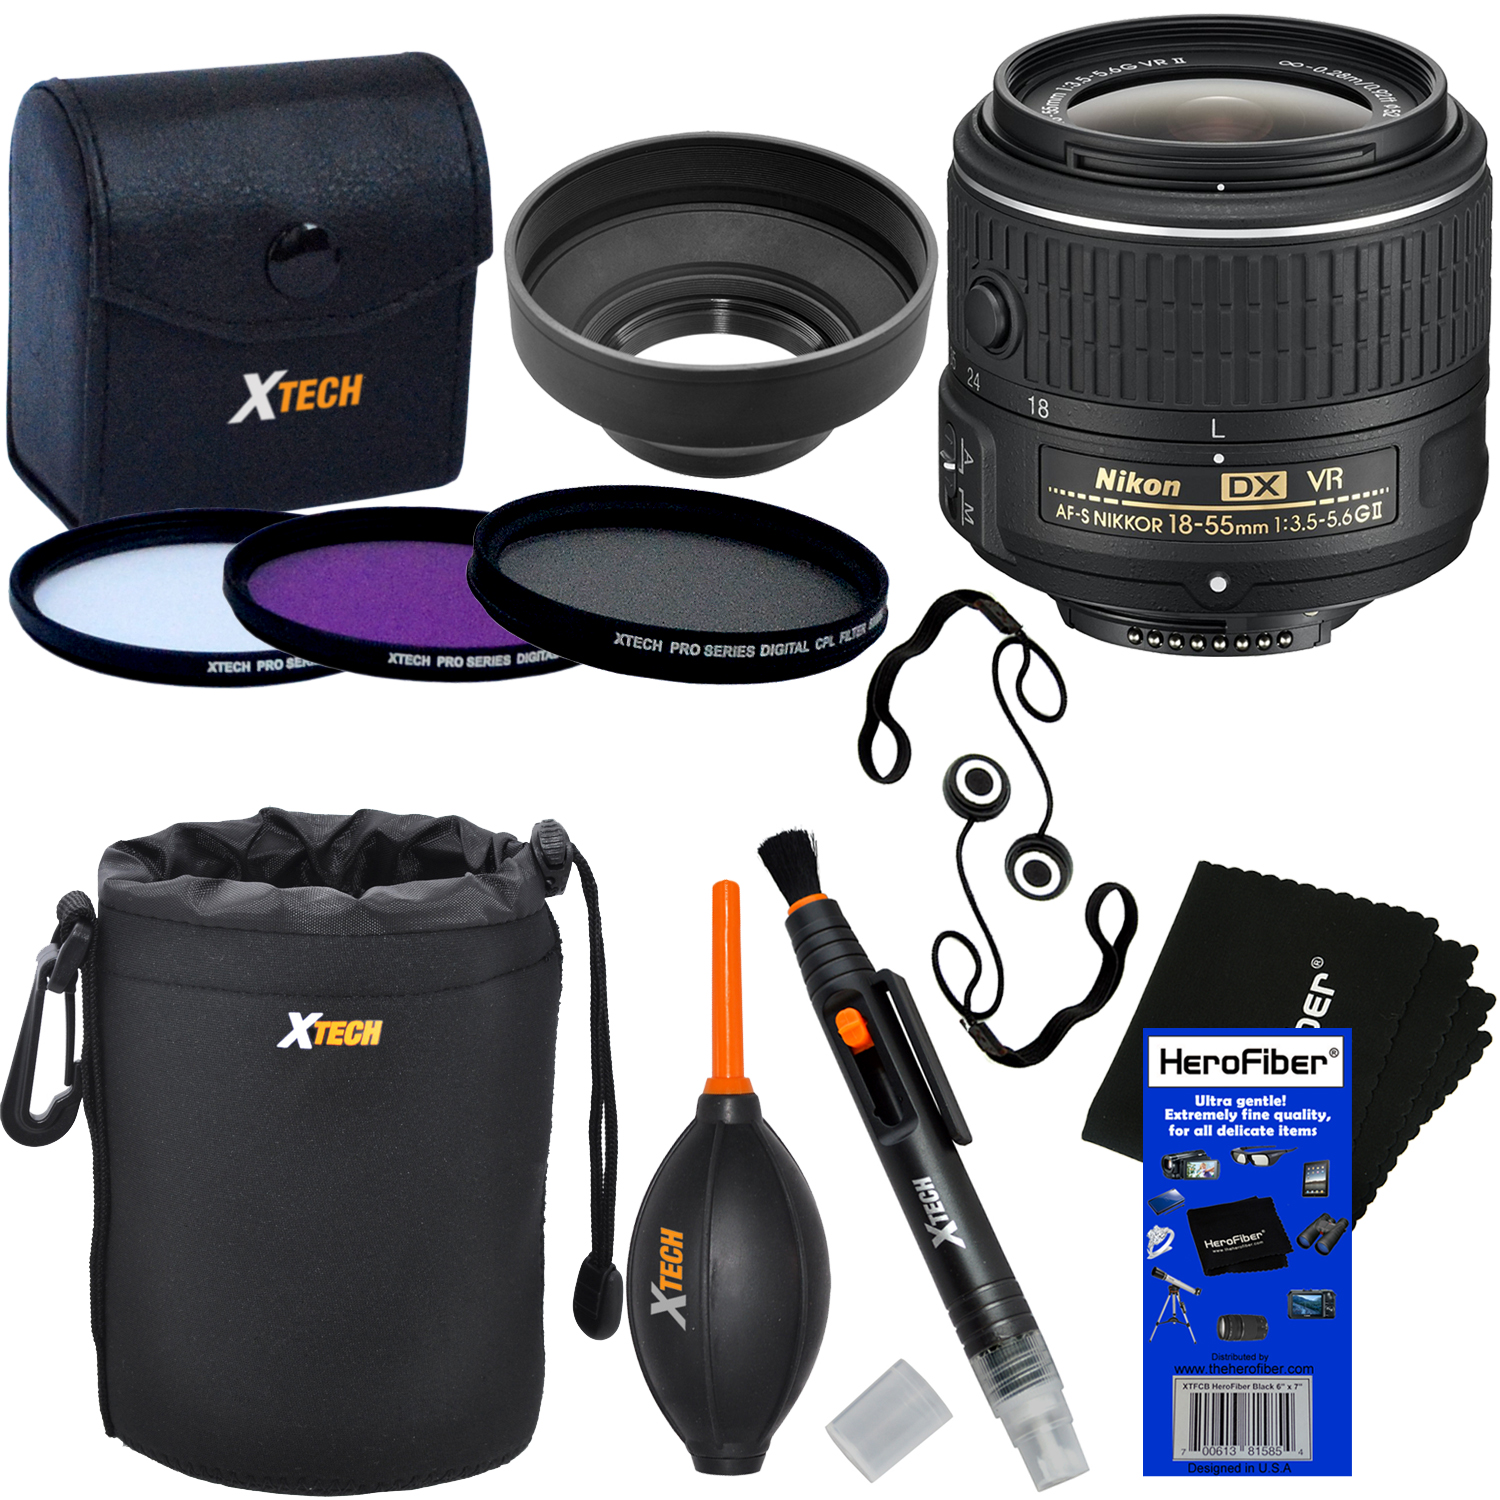 Nikon AF-S DX NIKKOR 18-55mm f/3.5-5.6G VR II Zoom Lens for Nikon DSLR Cameras + 3pc Filter Kit (UV,FL-D,CPL) + 8pc Accessory Kit w/ HeroFiber Cleaning Cloth